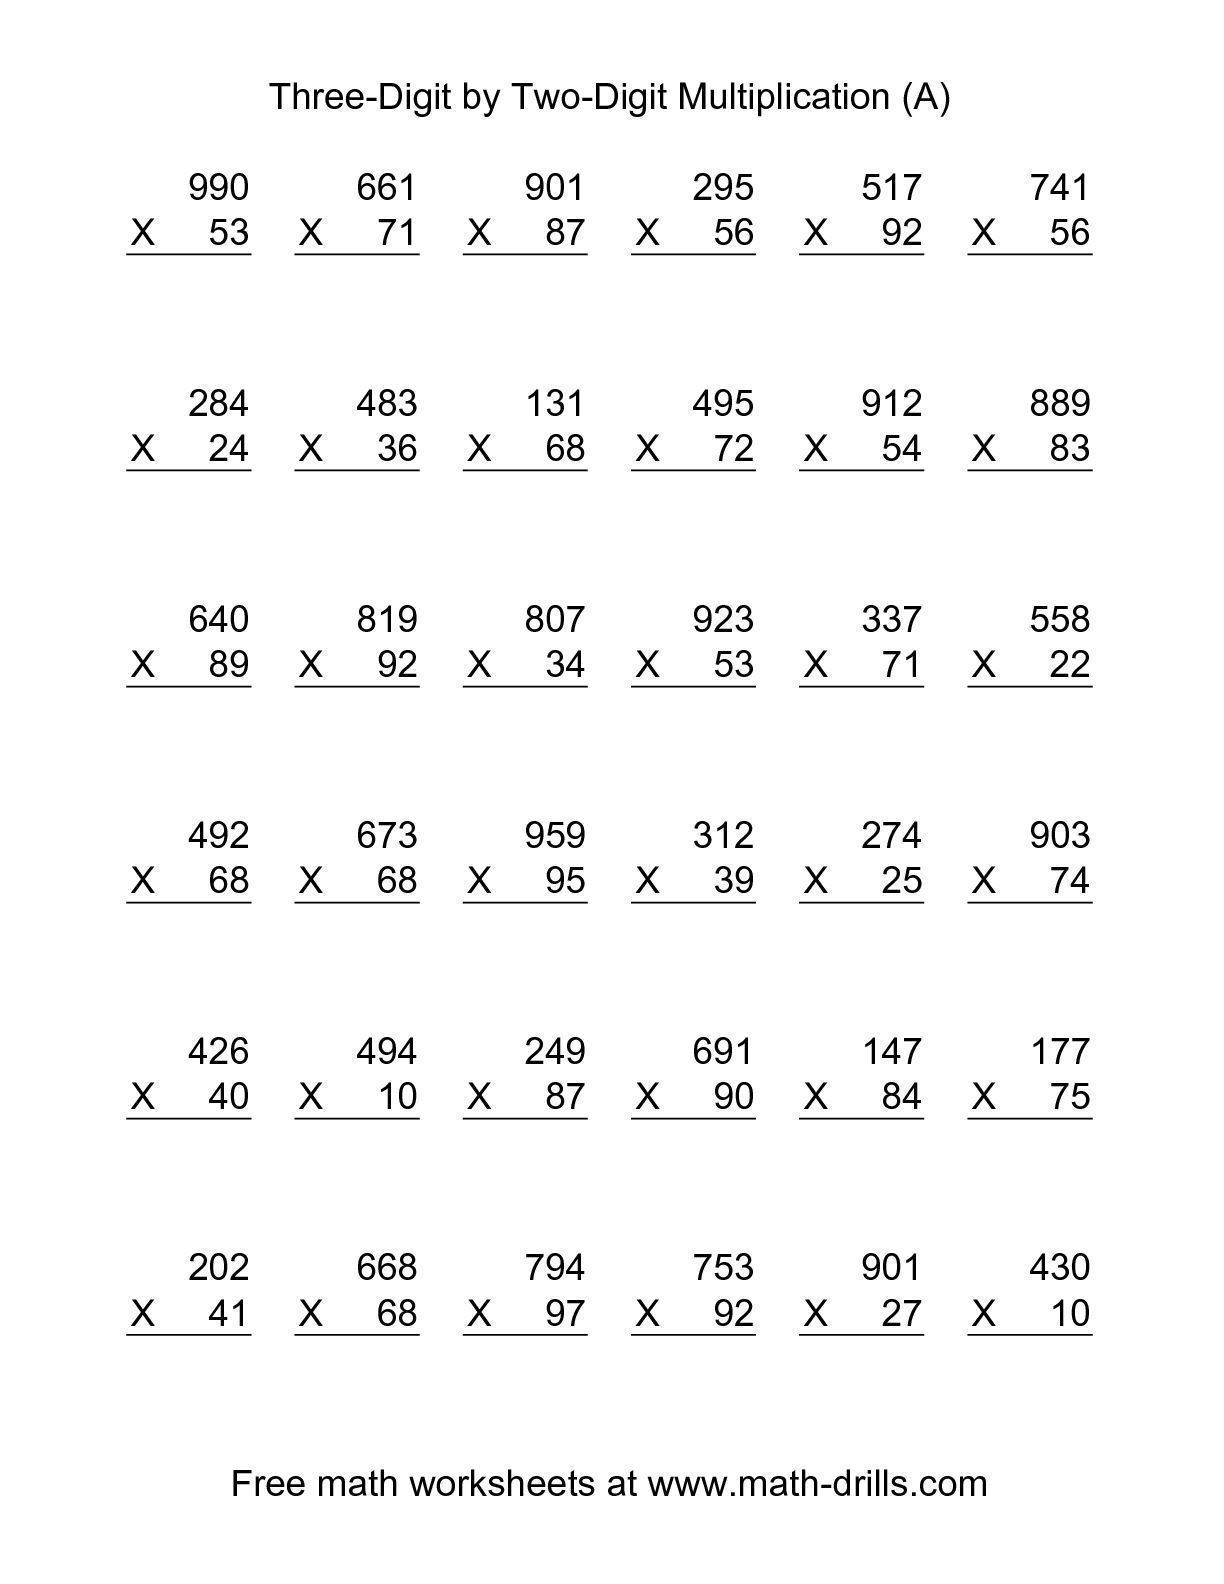 The Multiplying Three-Digit by Two-Digit -- 36 per page (A) math ...